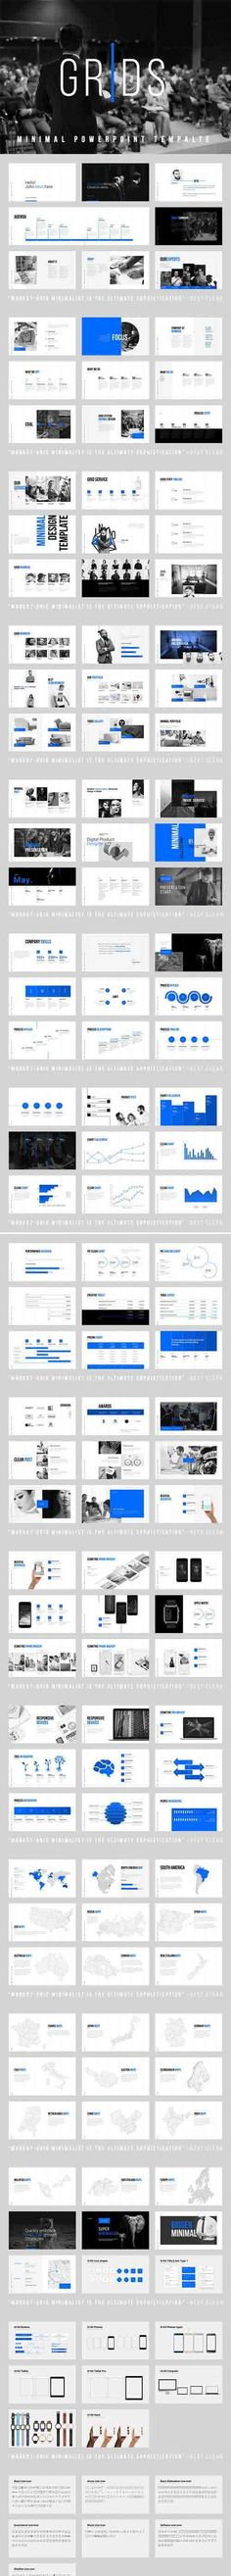 CreativeMarket - Grids-Minimal Powerpoint Template Hackerzpalace - slip template